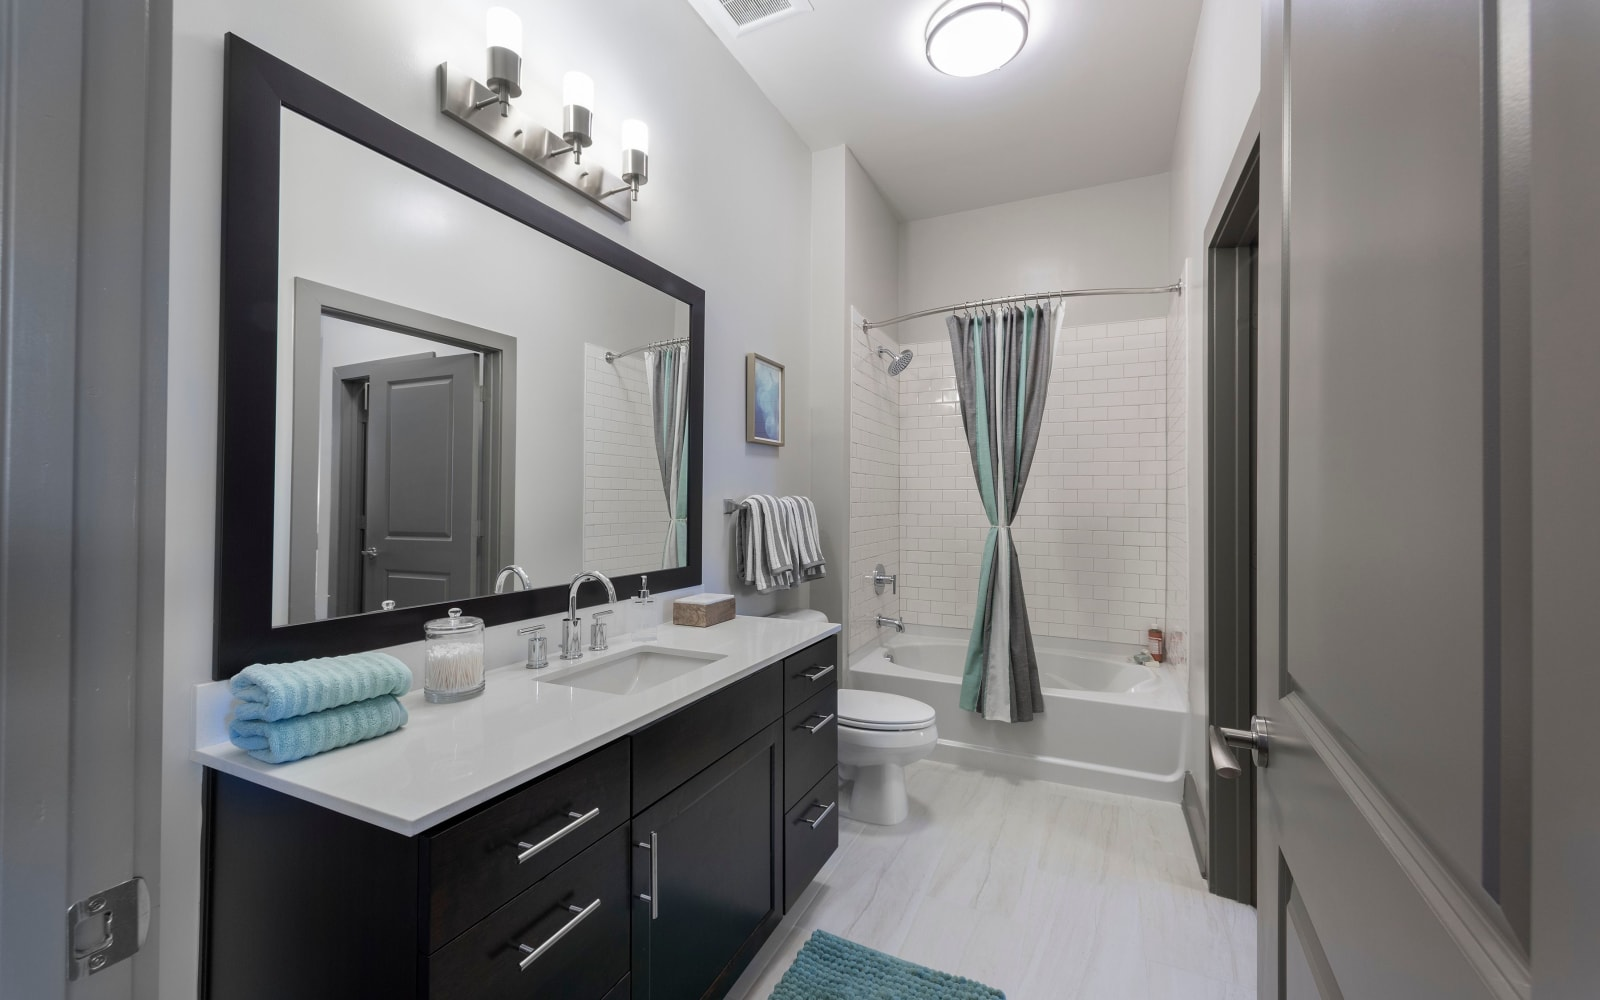 Spacious bathroom at The Addison in Baton Rouge, Louisiana